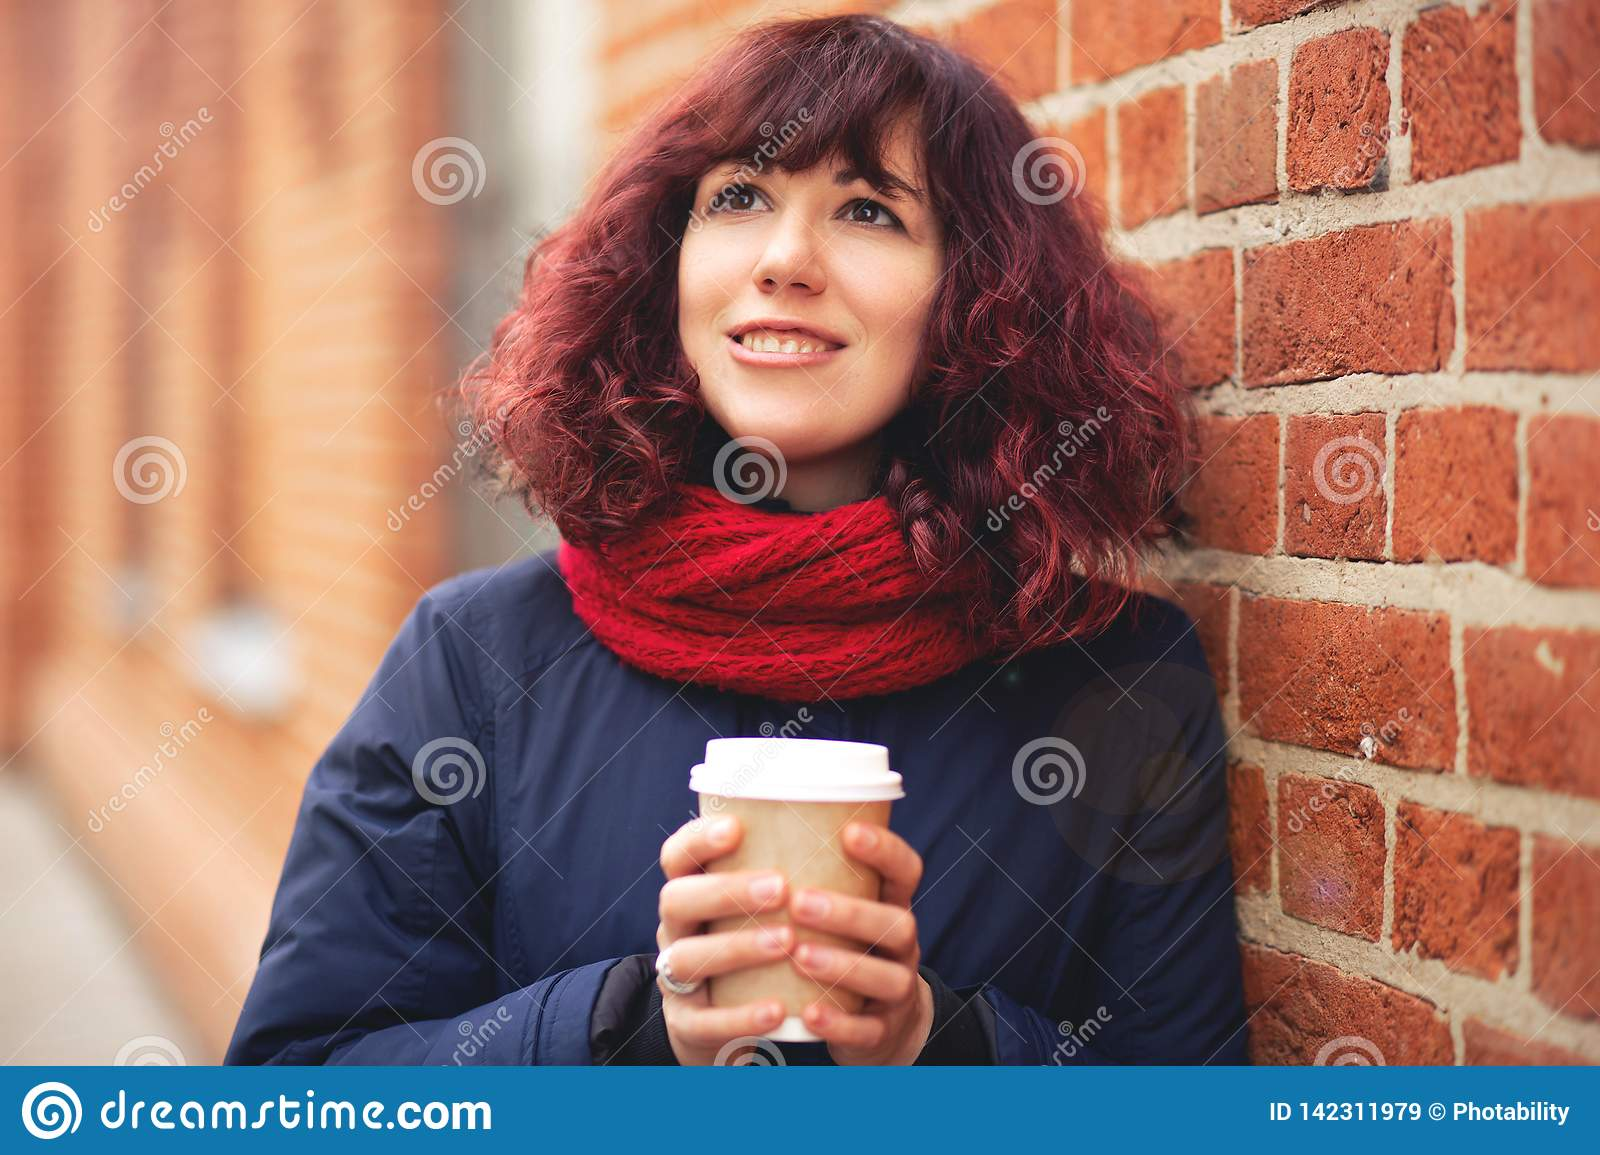 Girl with a glass of coffee in hand